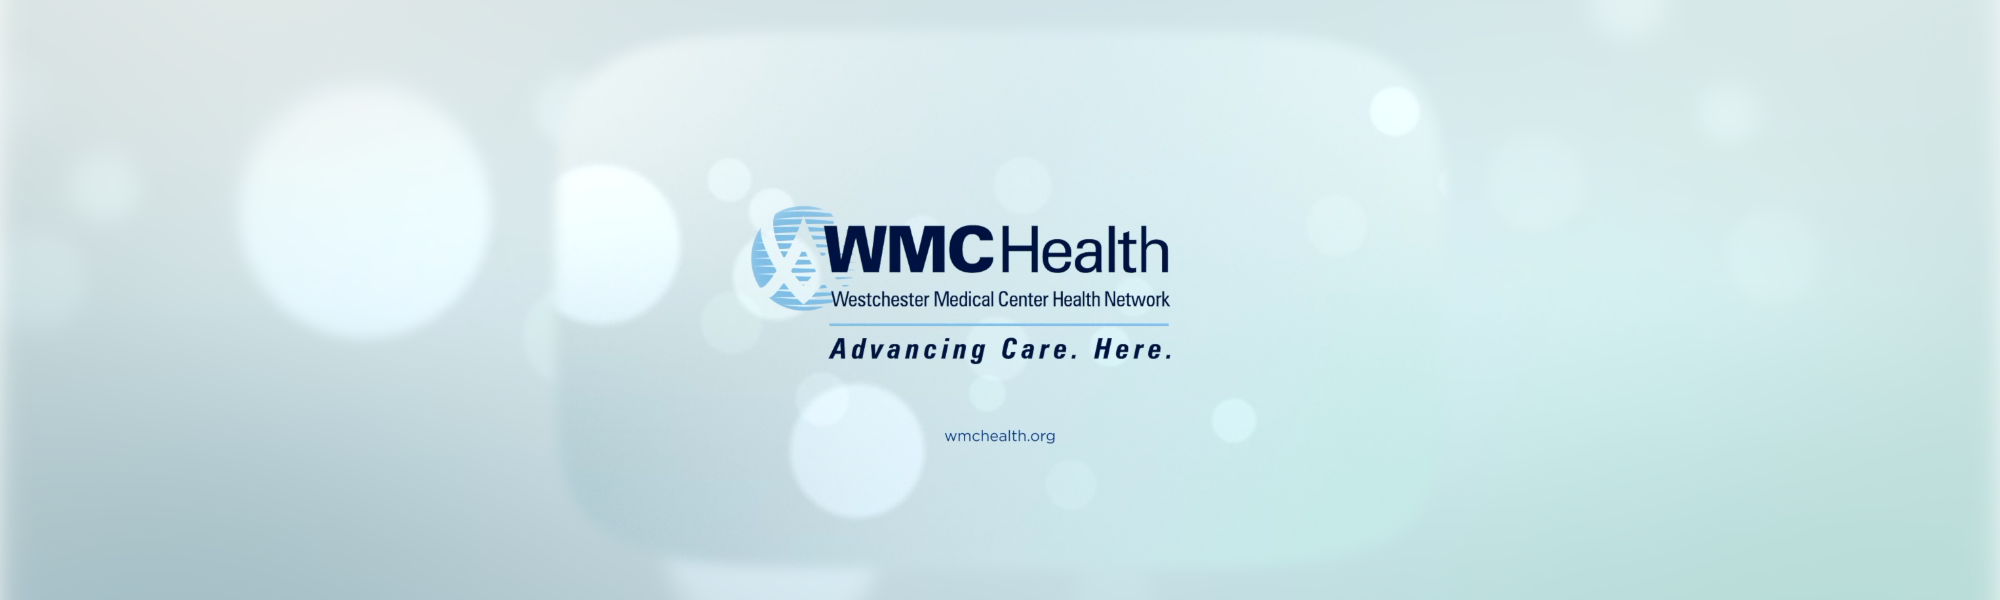 Homepage Video/Image - WMCHealth Network